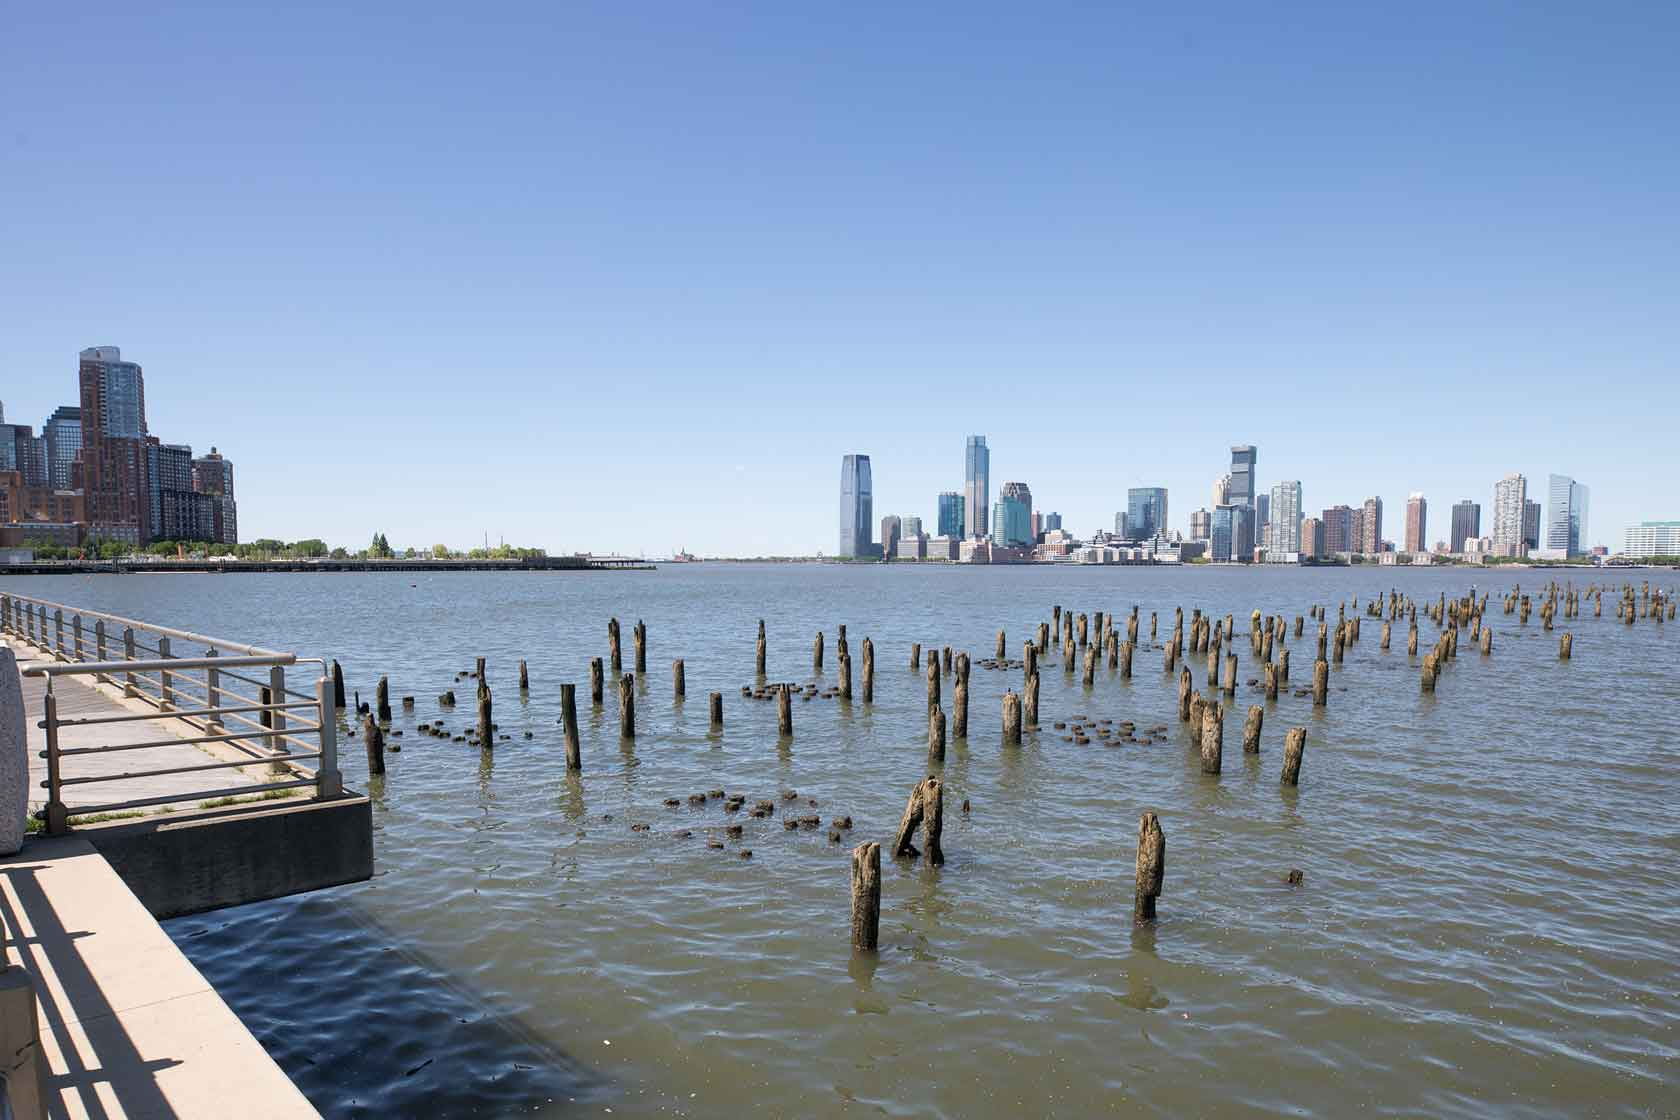 Piles where oysters live near Pier 34